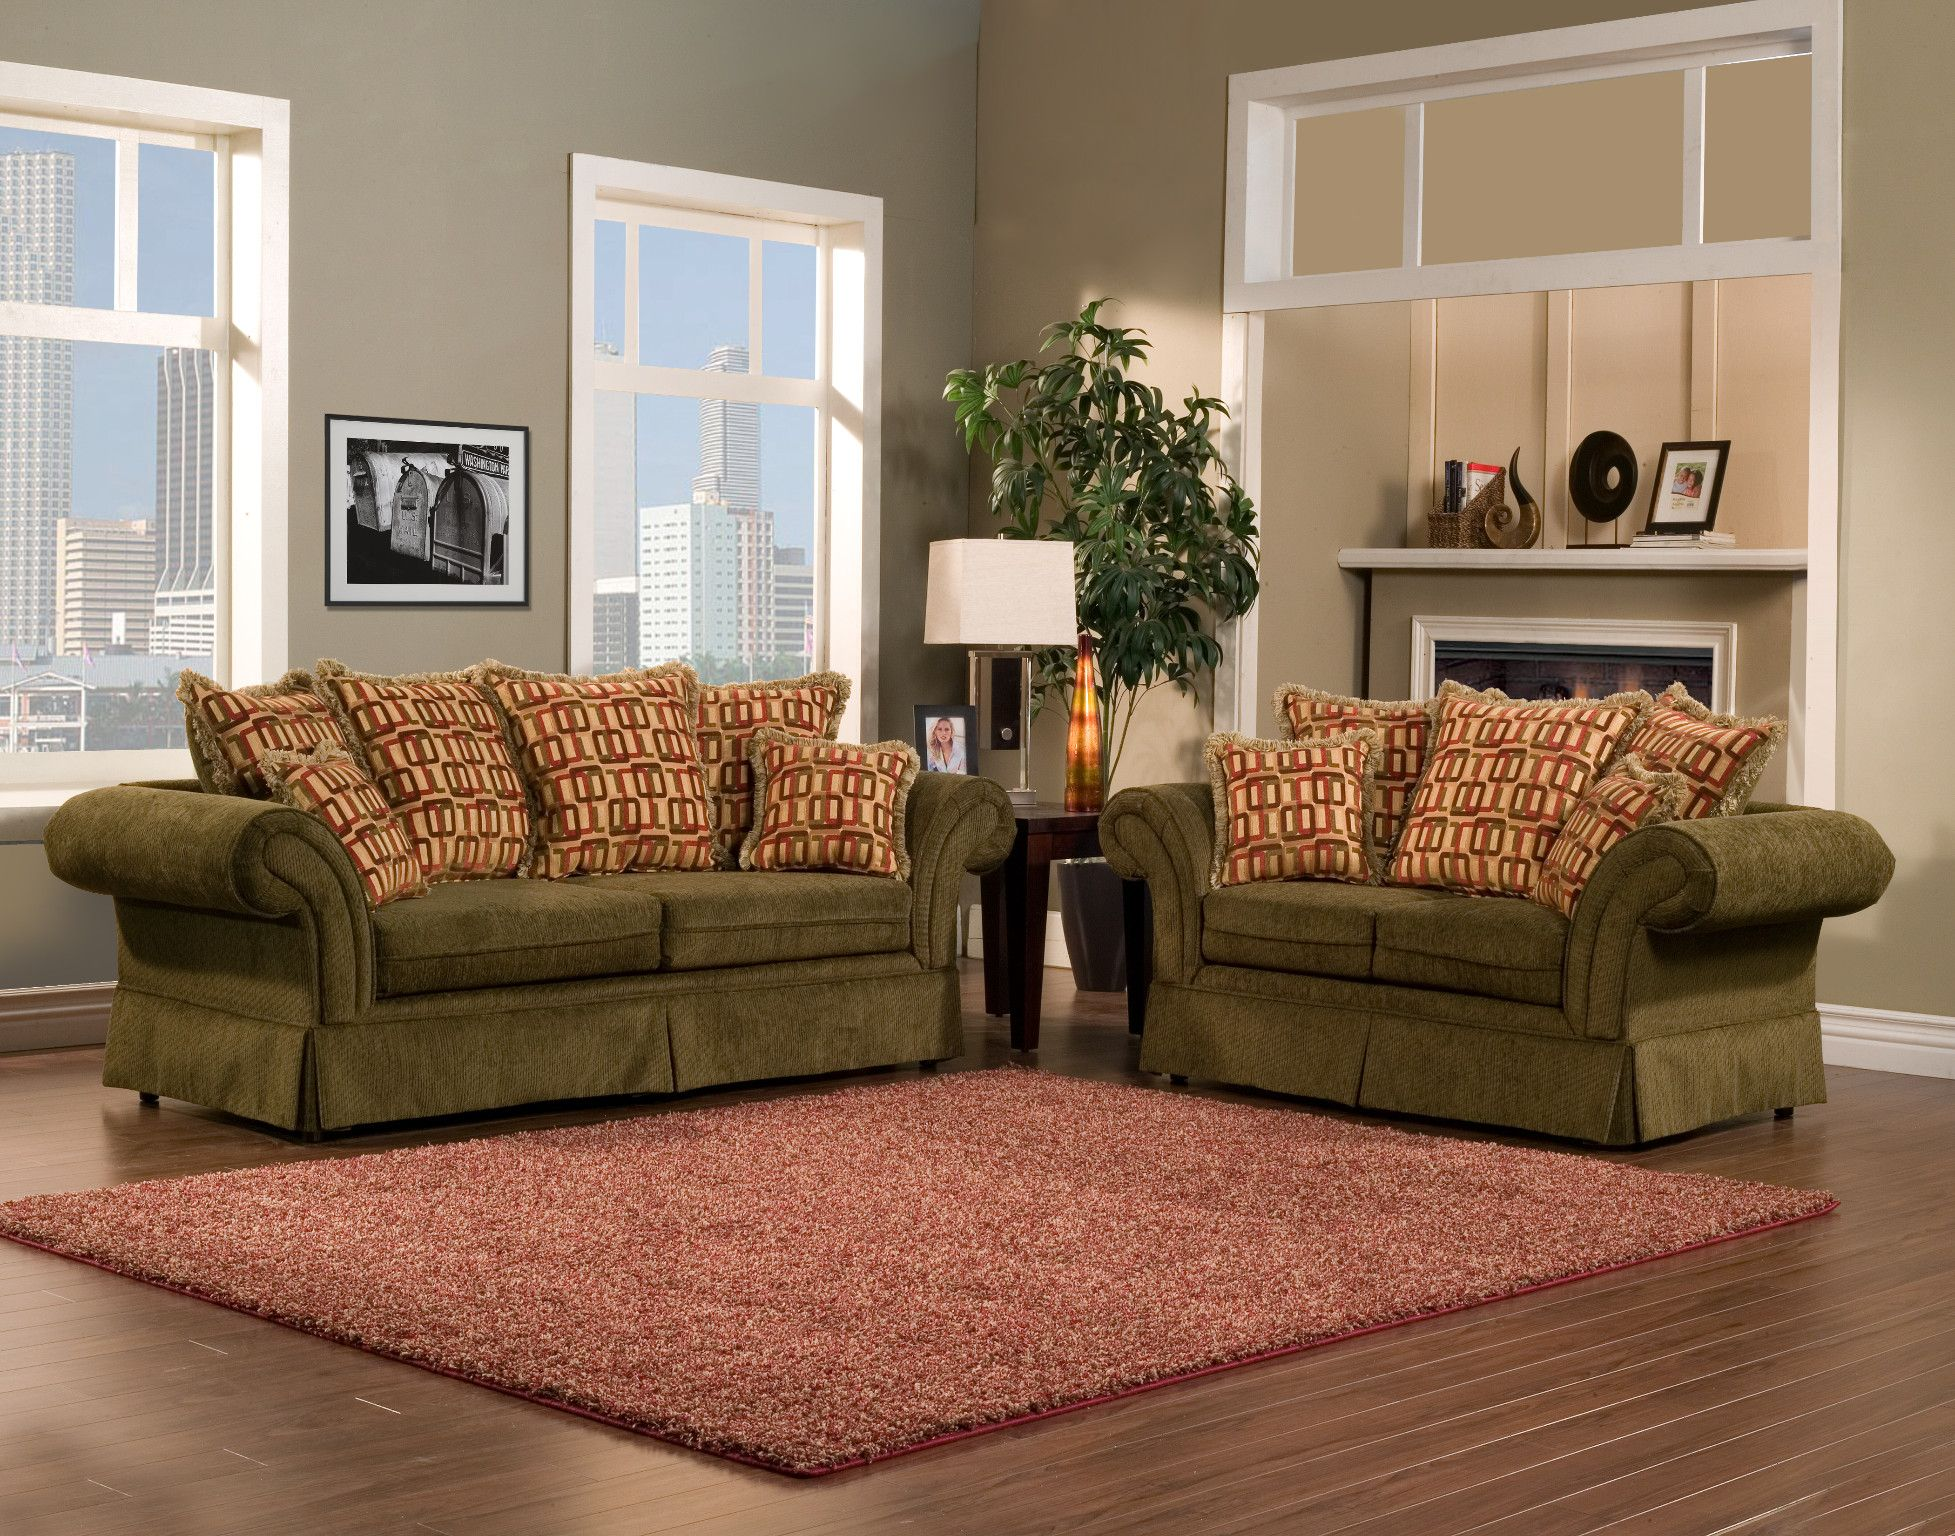 Olive Green Sofa Living Room Ideas Teal Corner Dfs Pleasureable Fabric Traditional With Red